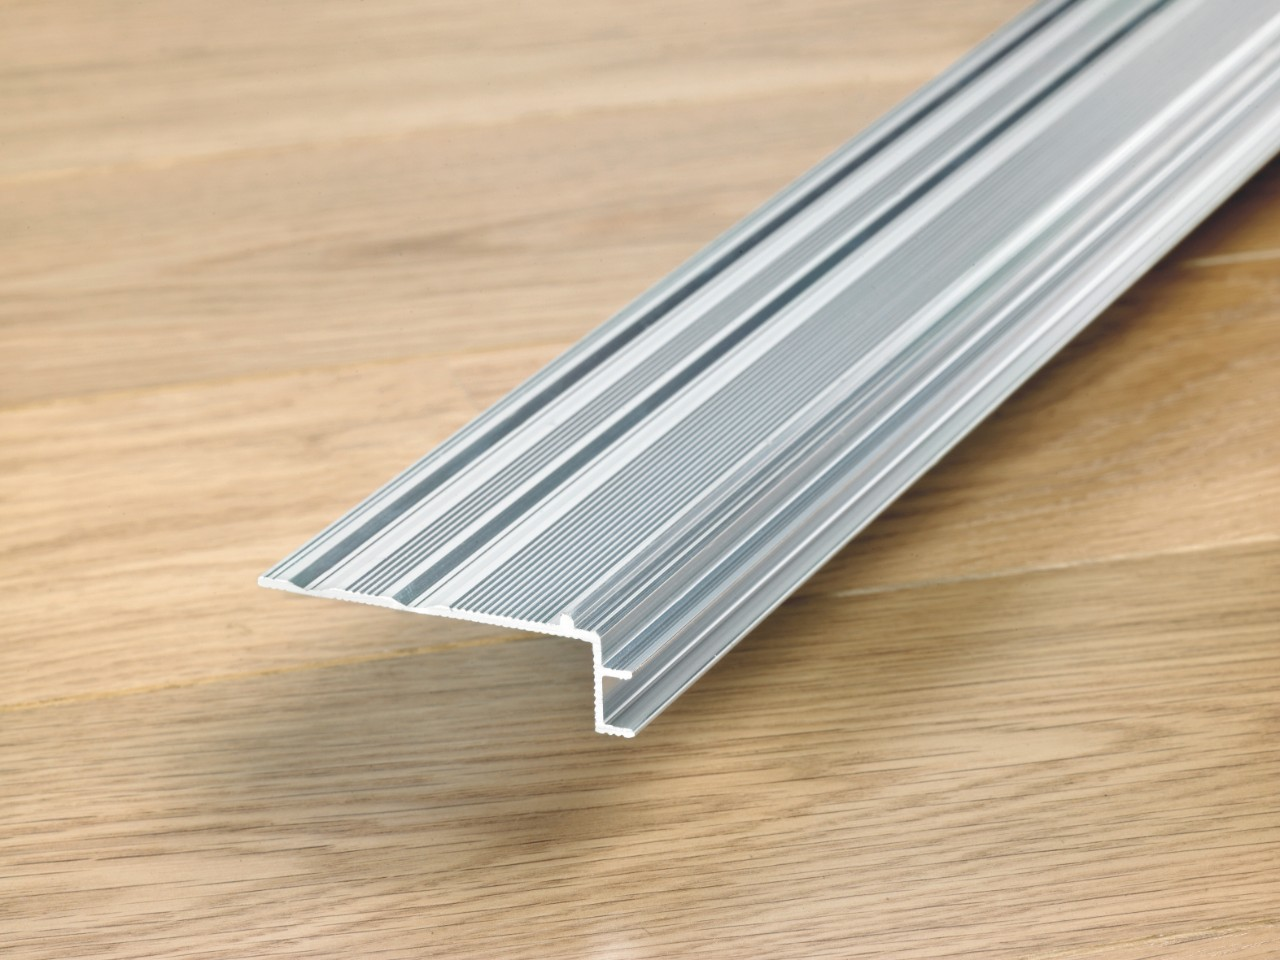 NEINCPBASE Laminate Accessories Quick-Step Incizo Stair Base for 8mm Laminate floors - 2.15m long NEINCPBASE2